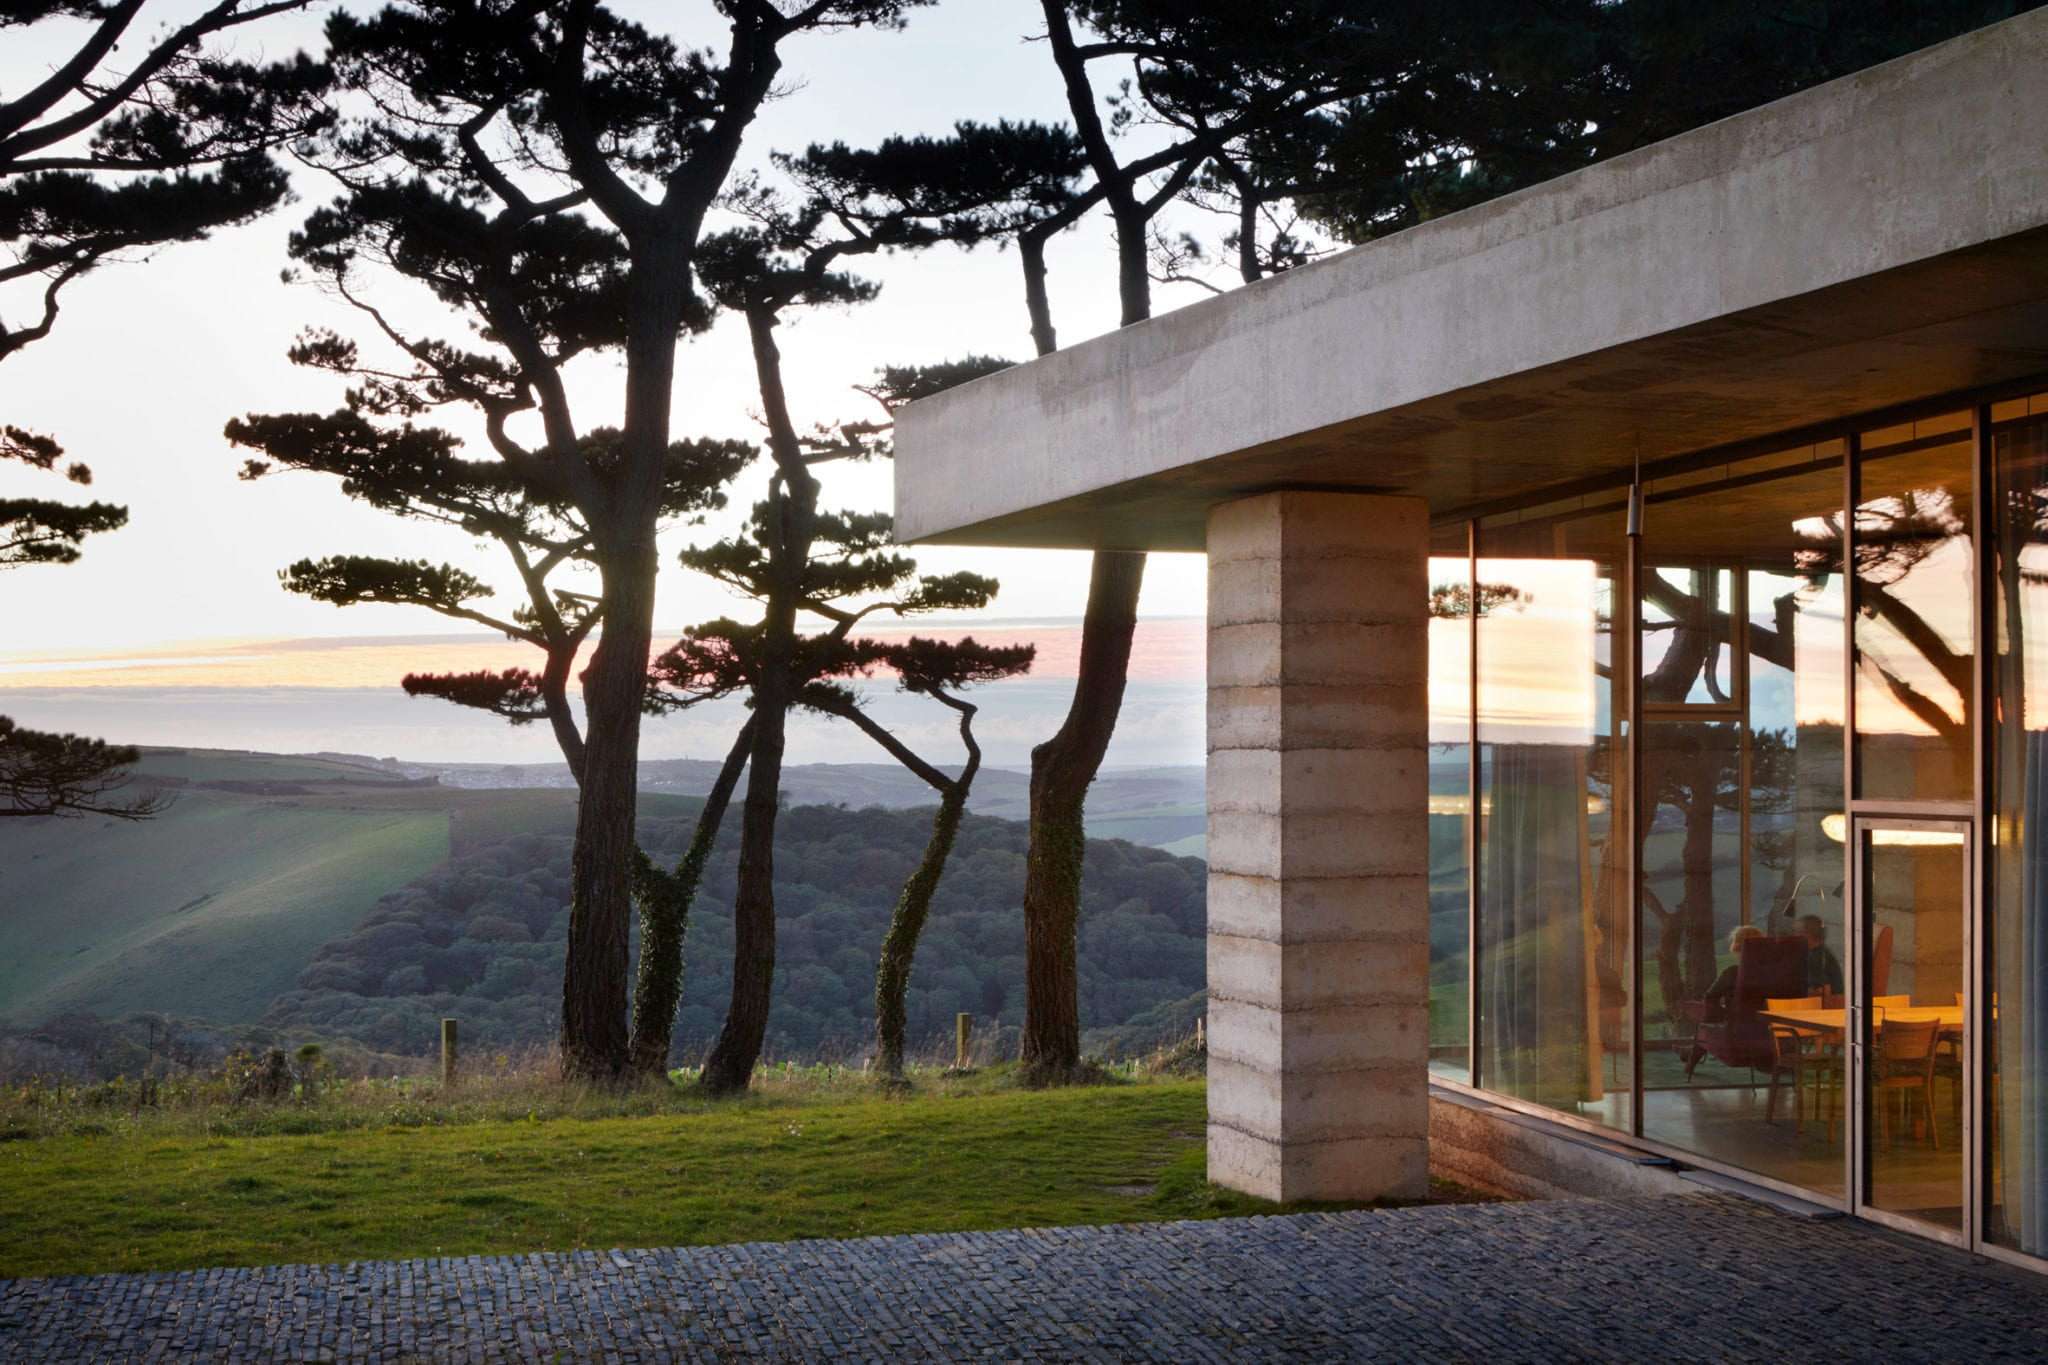 peter zumthor secular retreat living architecture dezeen 2364 col 6 - Cele mai hot case ale anului 2018 (II)